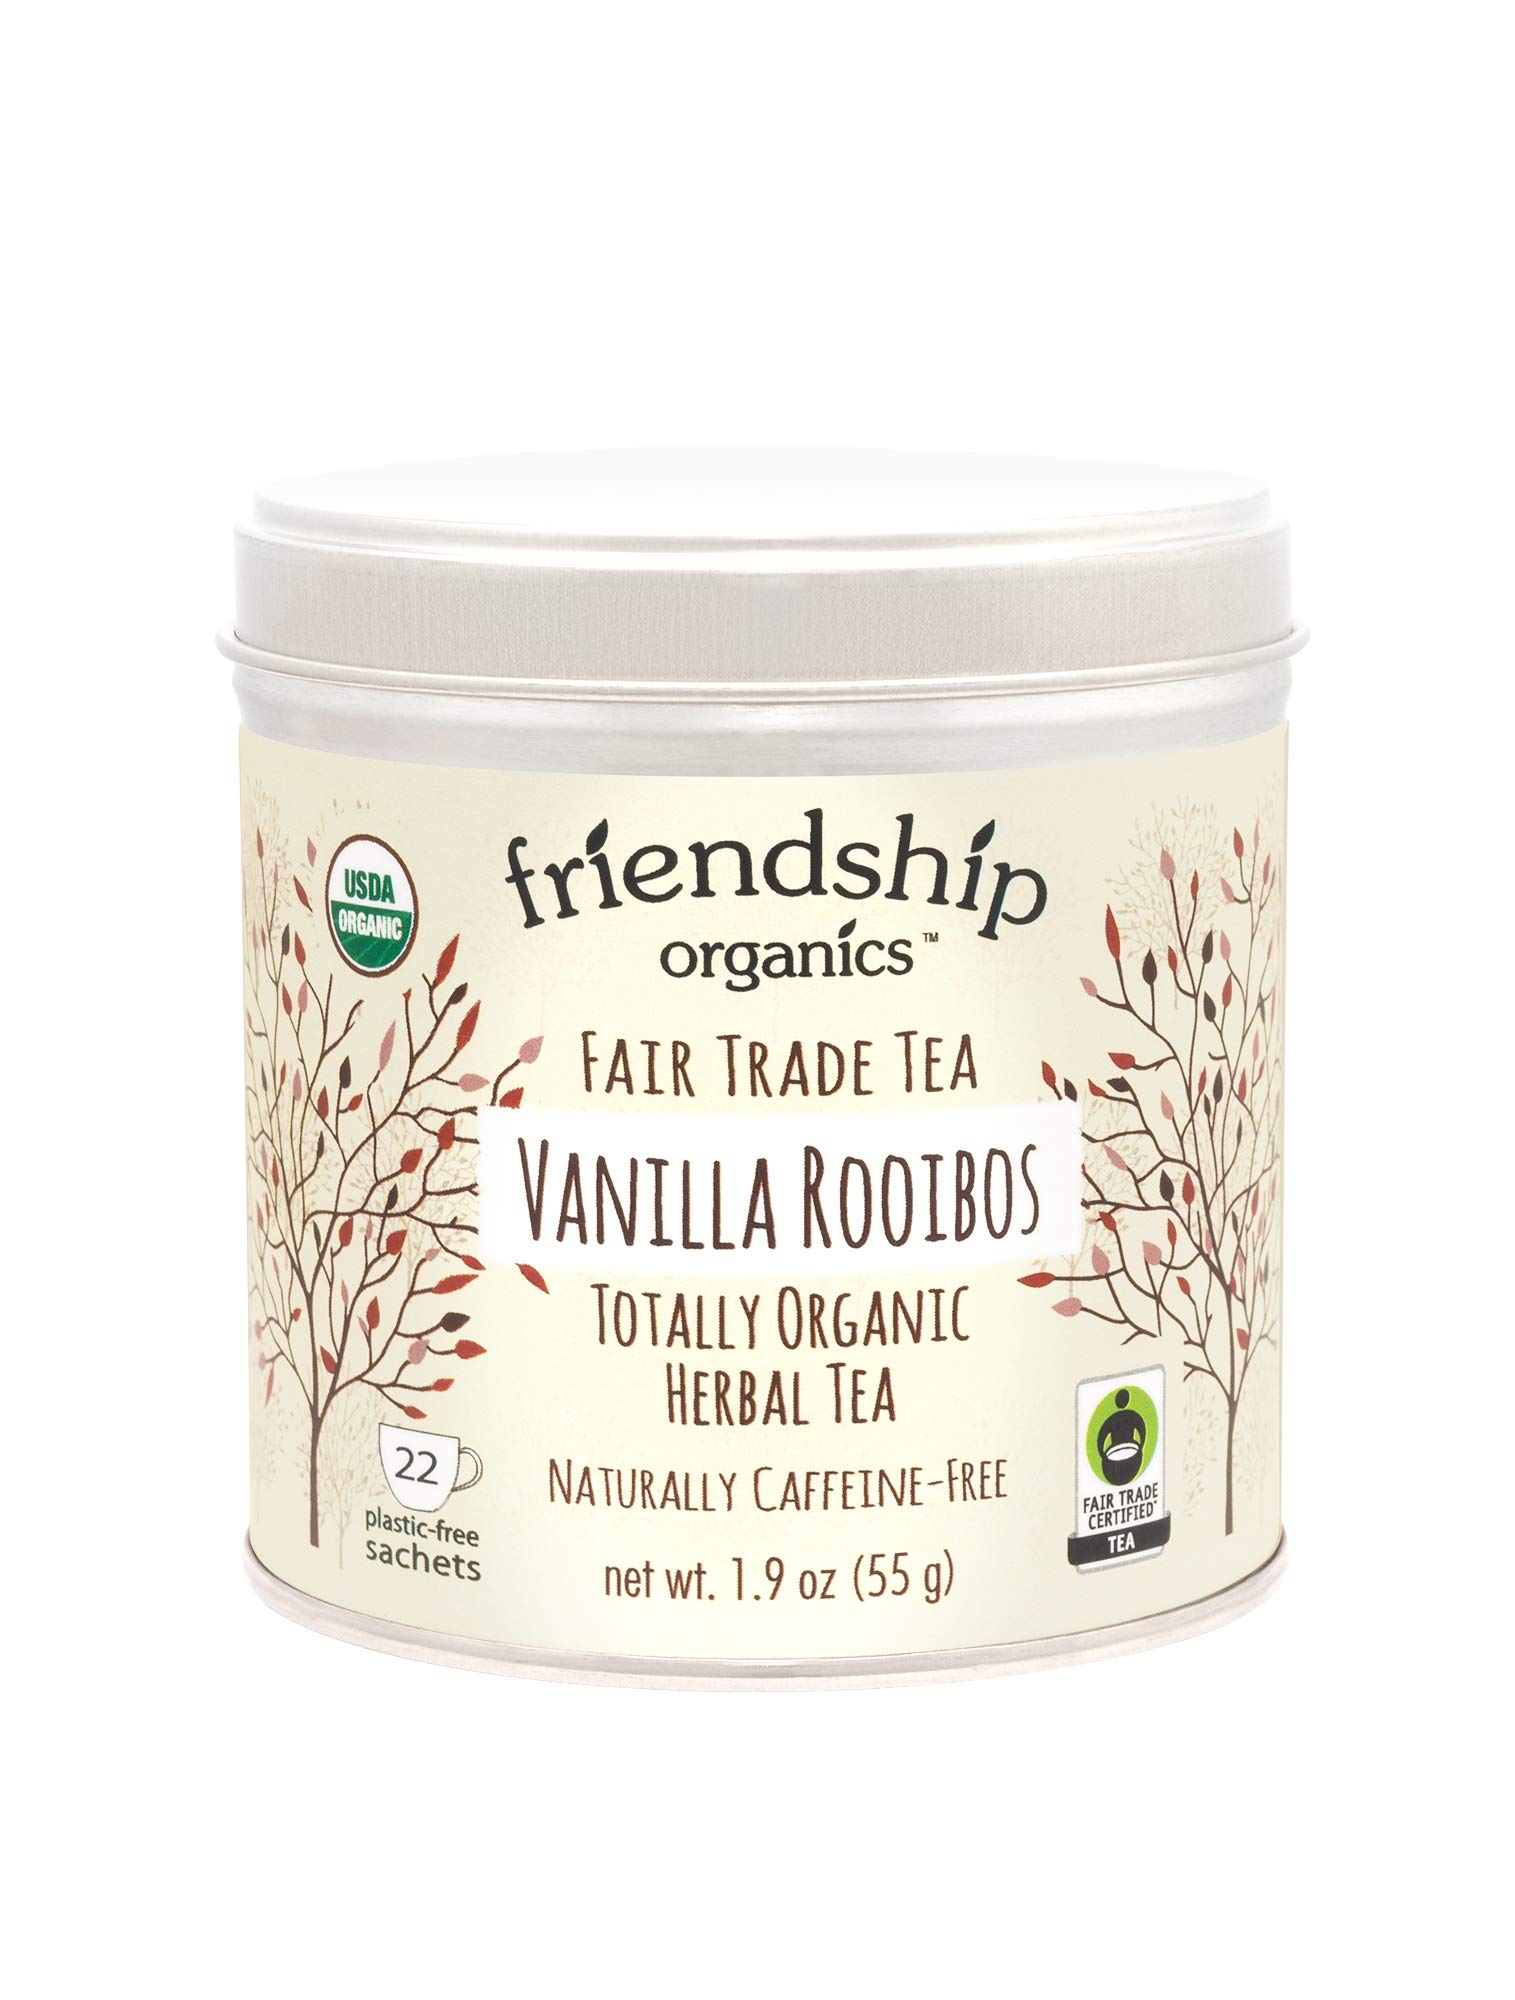 Friendship Organics Vanilla Rooibos, Totally Organic and Fair Trade Herbal Tea in Tagless Tea Bags (22 Count)